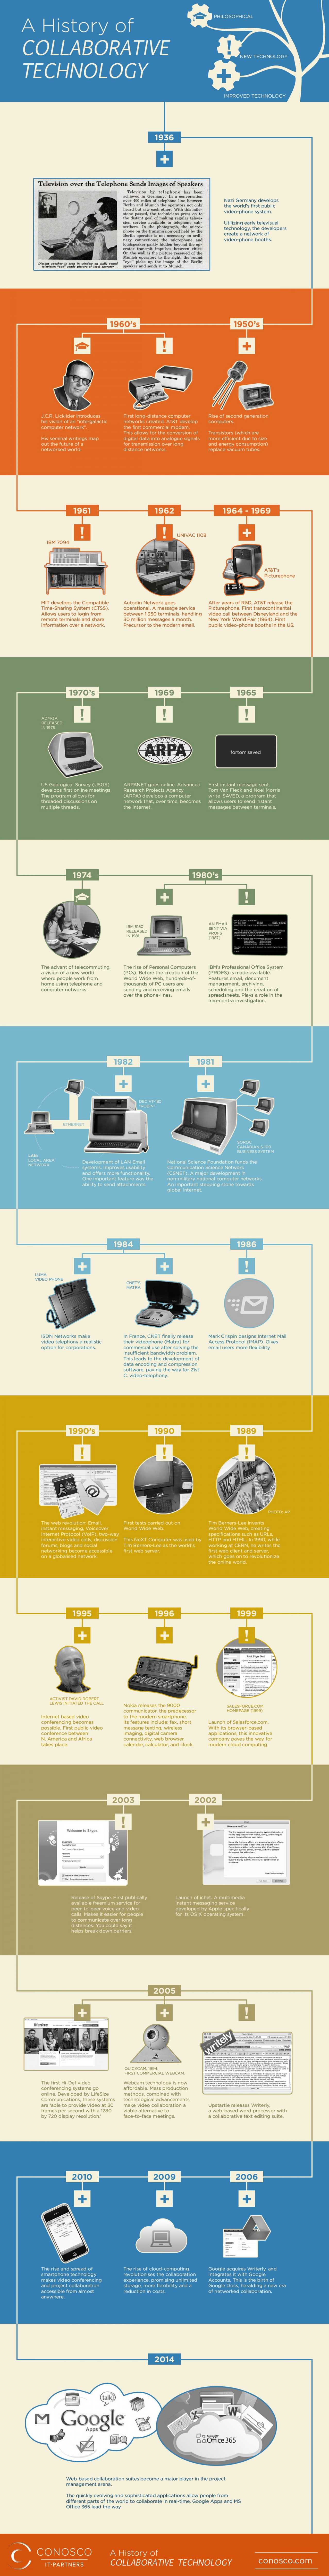 A History Of Collaborative Technology Visual Ly Technology History Infographic